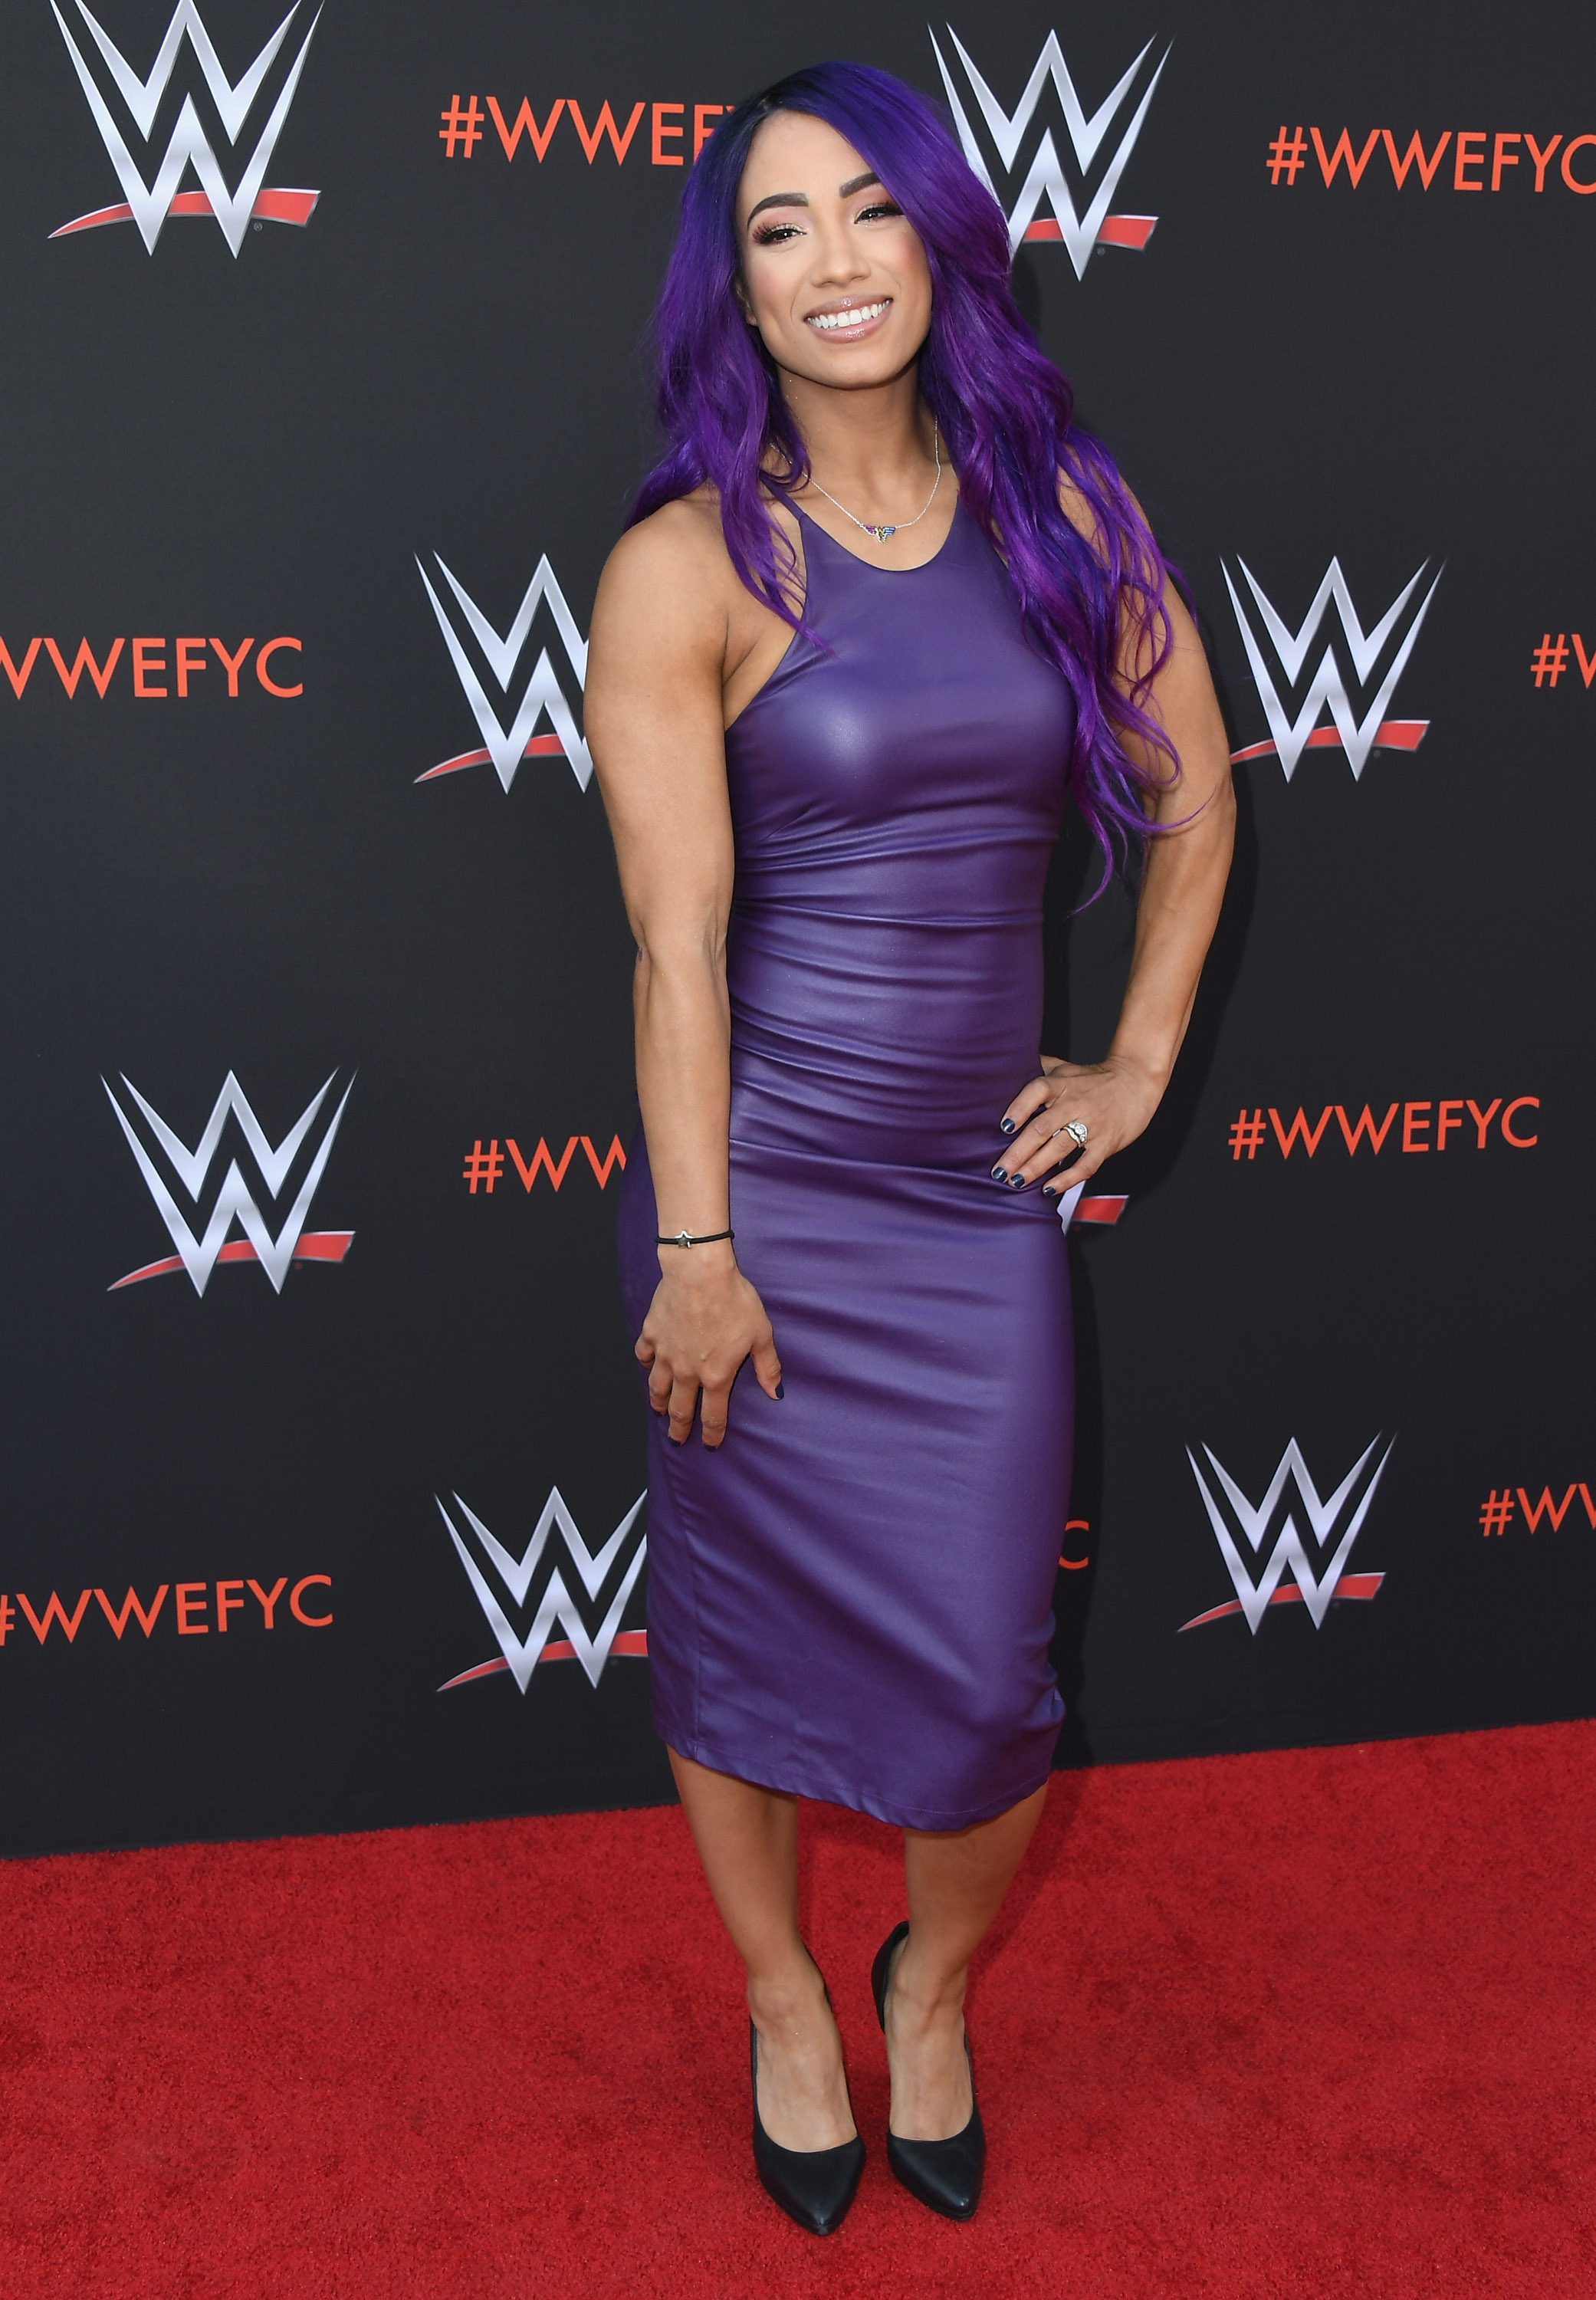 Sasha Banks attends WWE's First-Ever Emmy 'For Your Consideration' Event at Saban Media Center on June 6, 2018 in North Hollywood, California. (Getty Images)